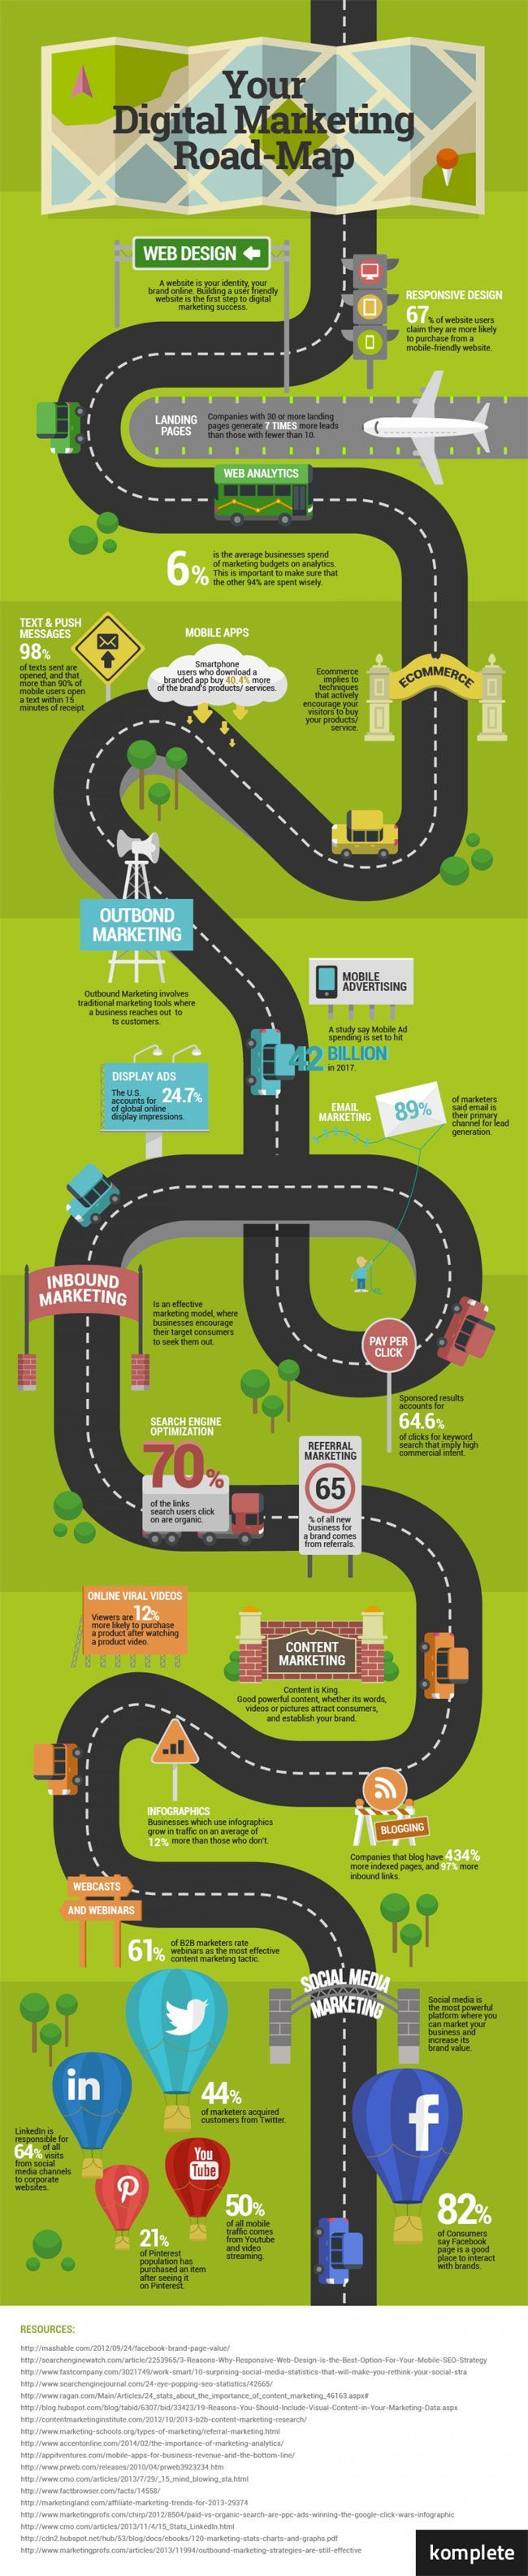 digital marketing road map. Make some easy money with this FREE web app --> http://bitcoinfaucetbonanza.com/ <-- Get Rich!